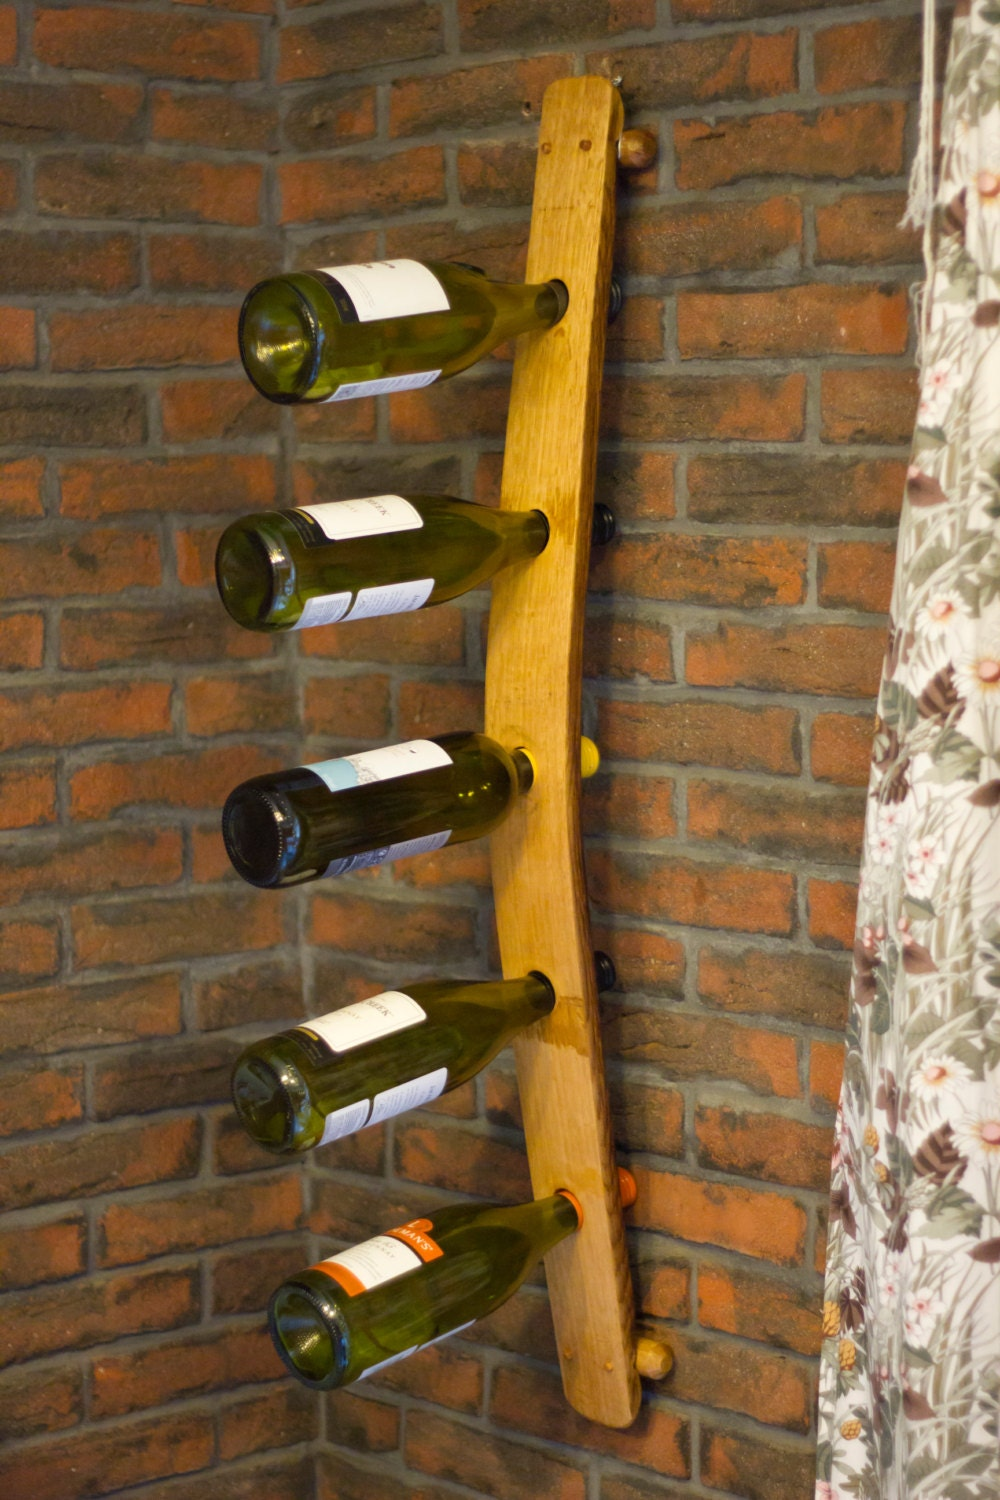 Reclaimed Rustic English Oak Wine Barrel Stave Wine Rack by The Fine Wooden Article Company